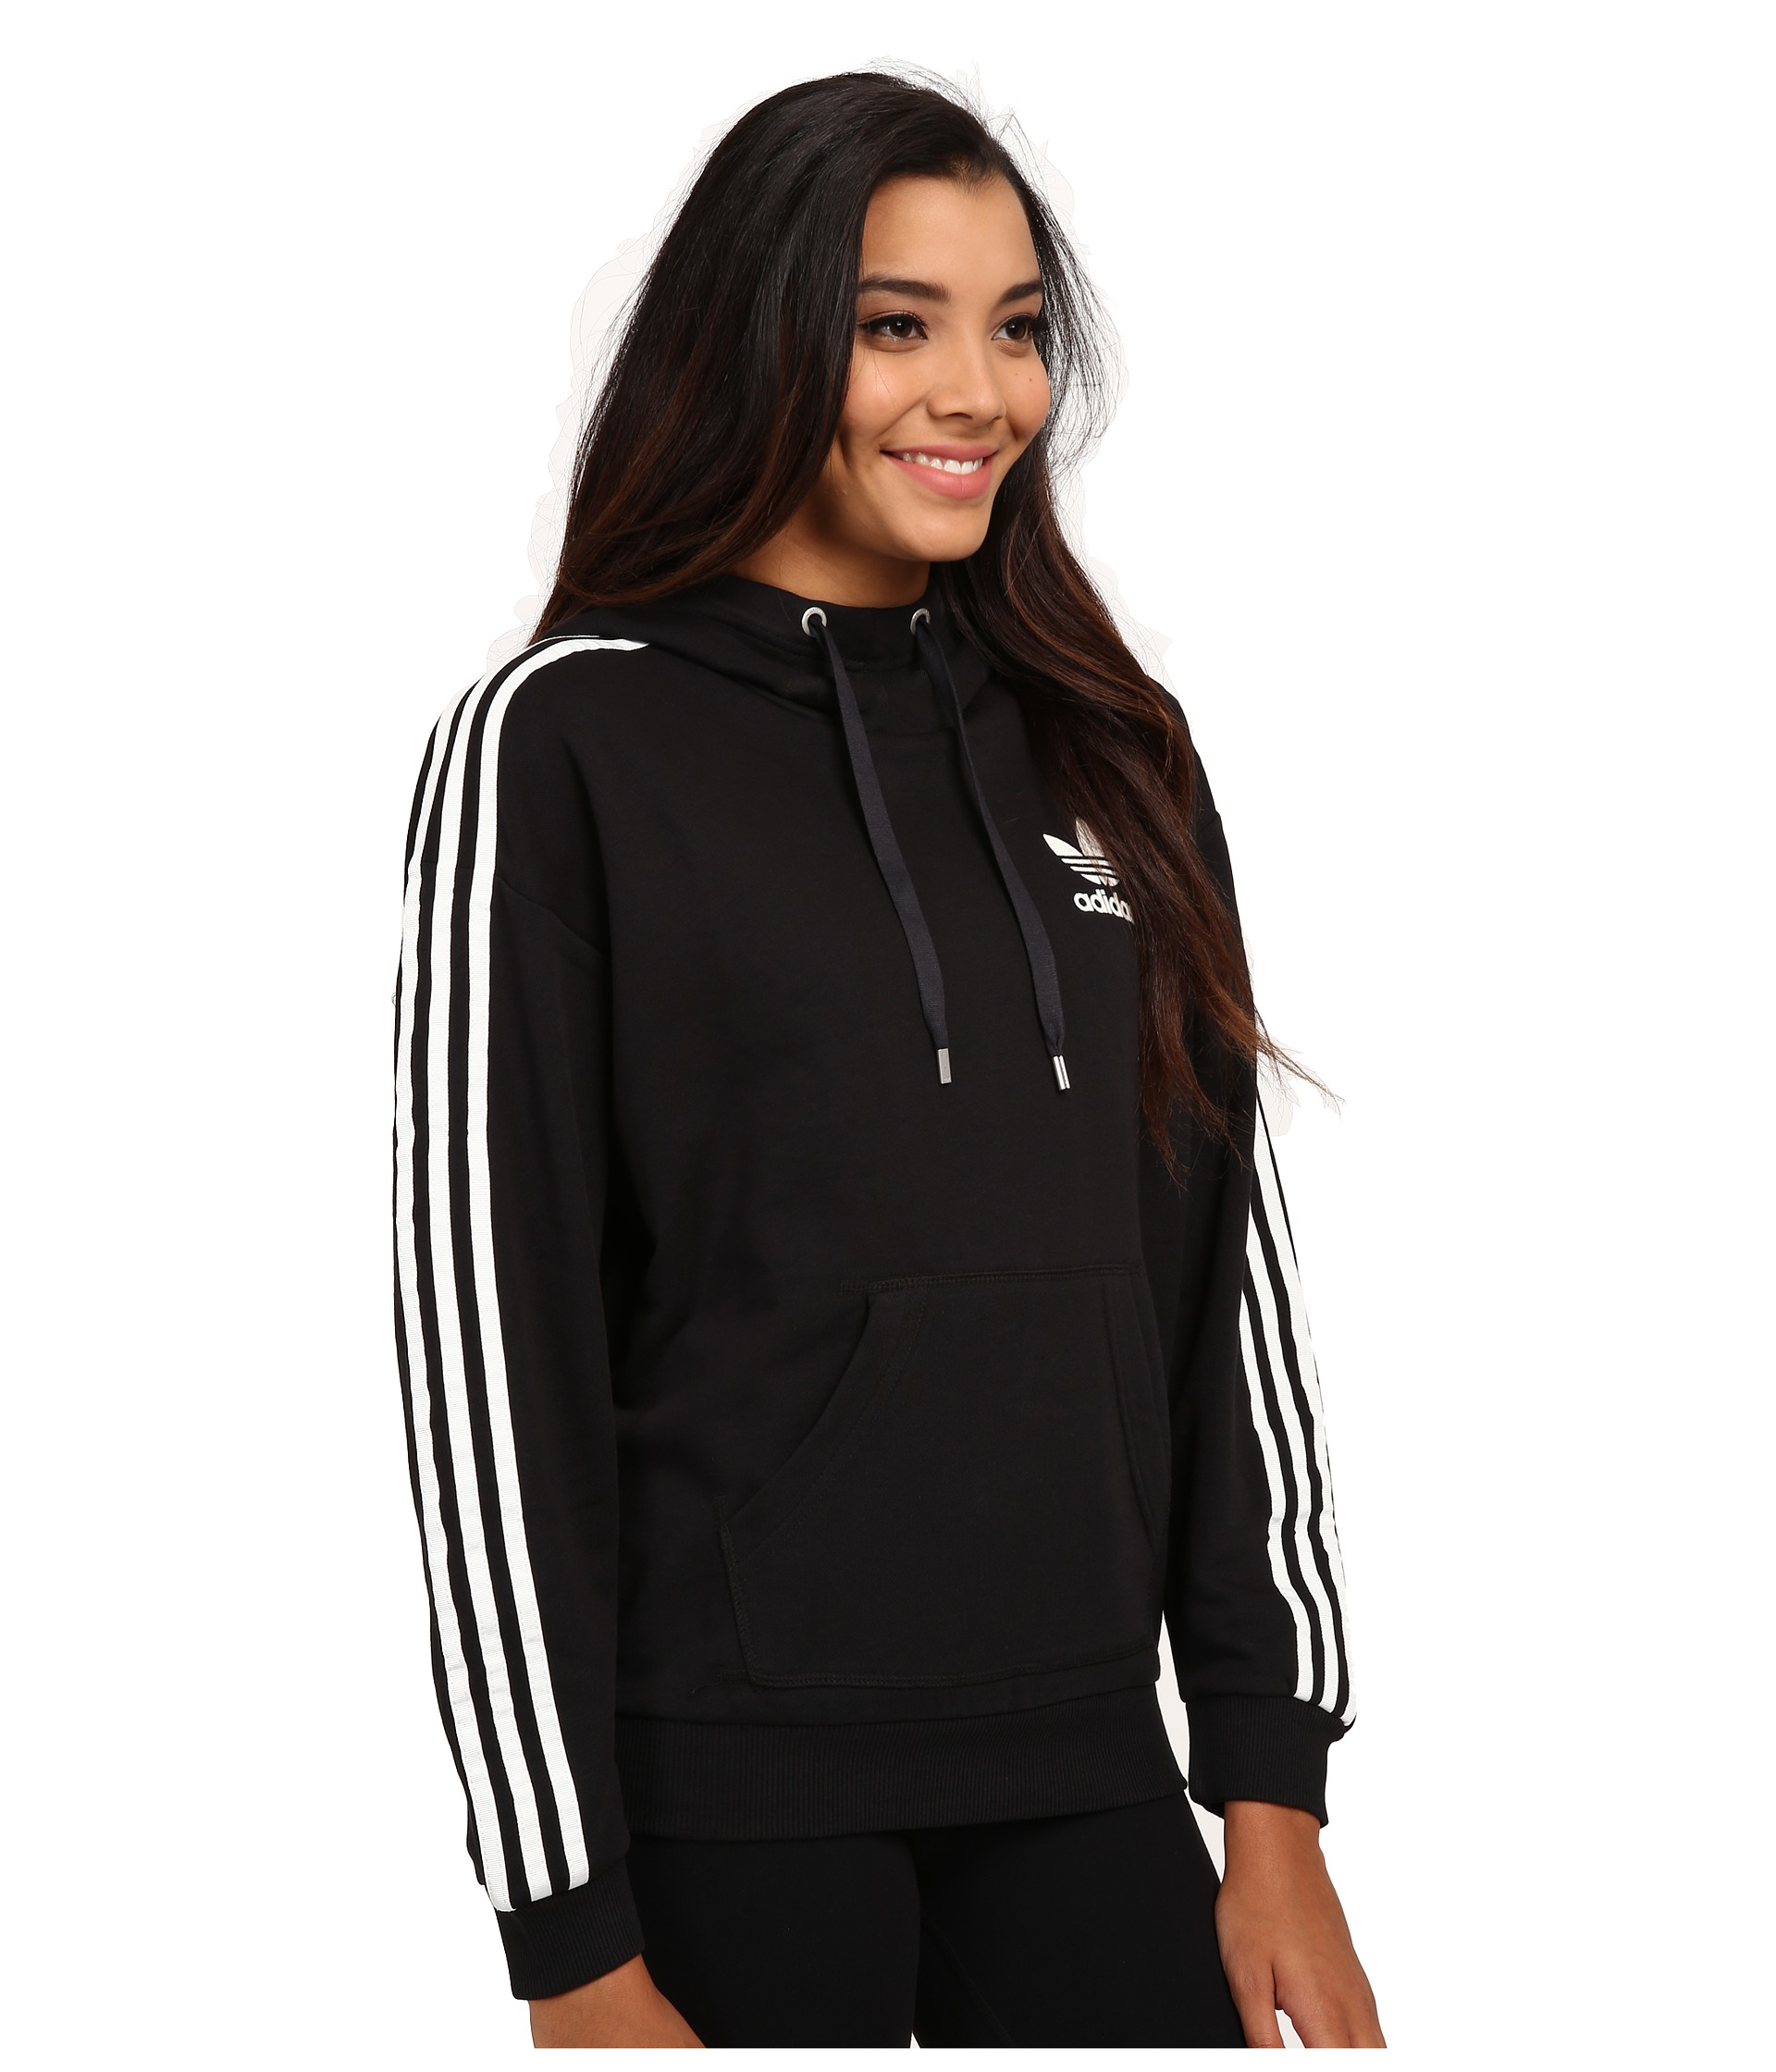 Women's Hoodies & Sweatshirts: Nike & More | Best Price ...